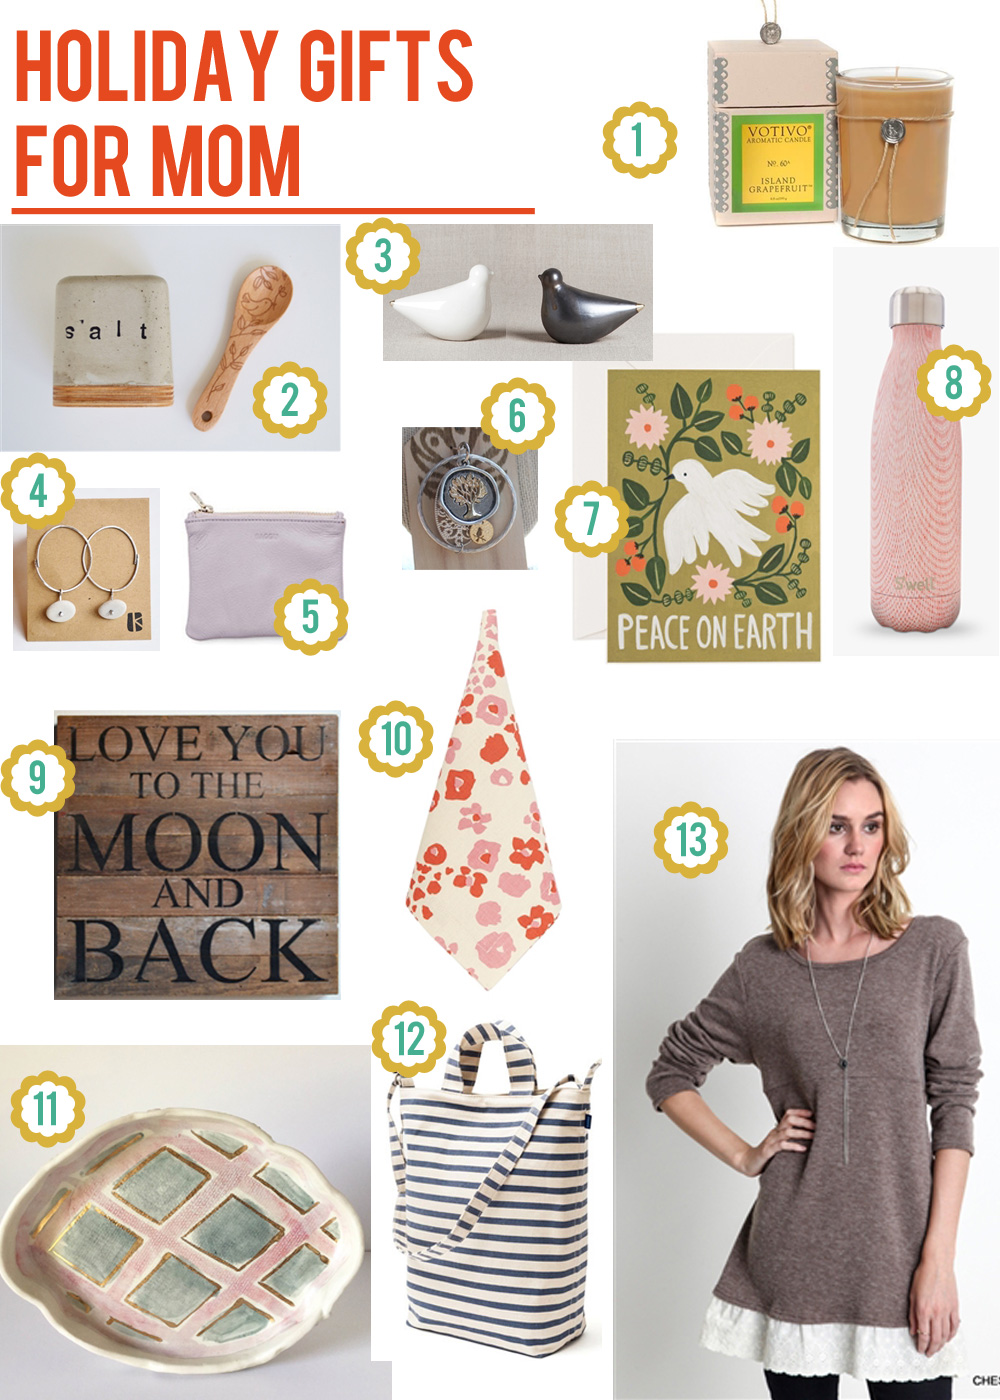 Holiday gift guide for moms Christmas ideas for your mom